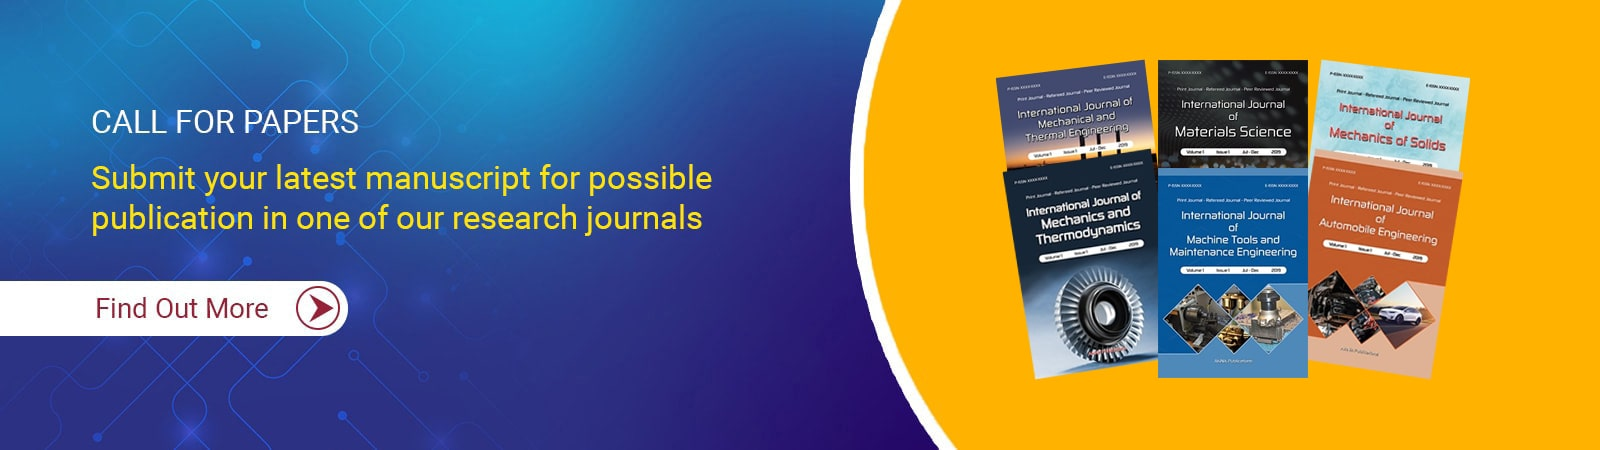 Mechanical Engineering Journals